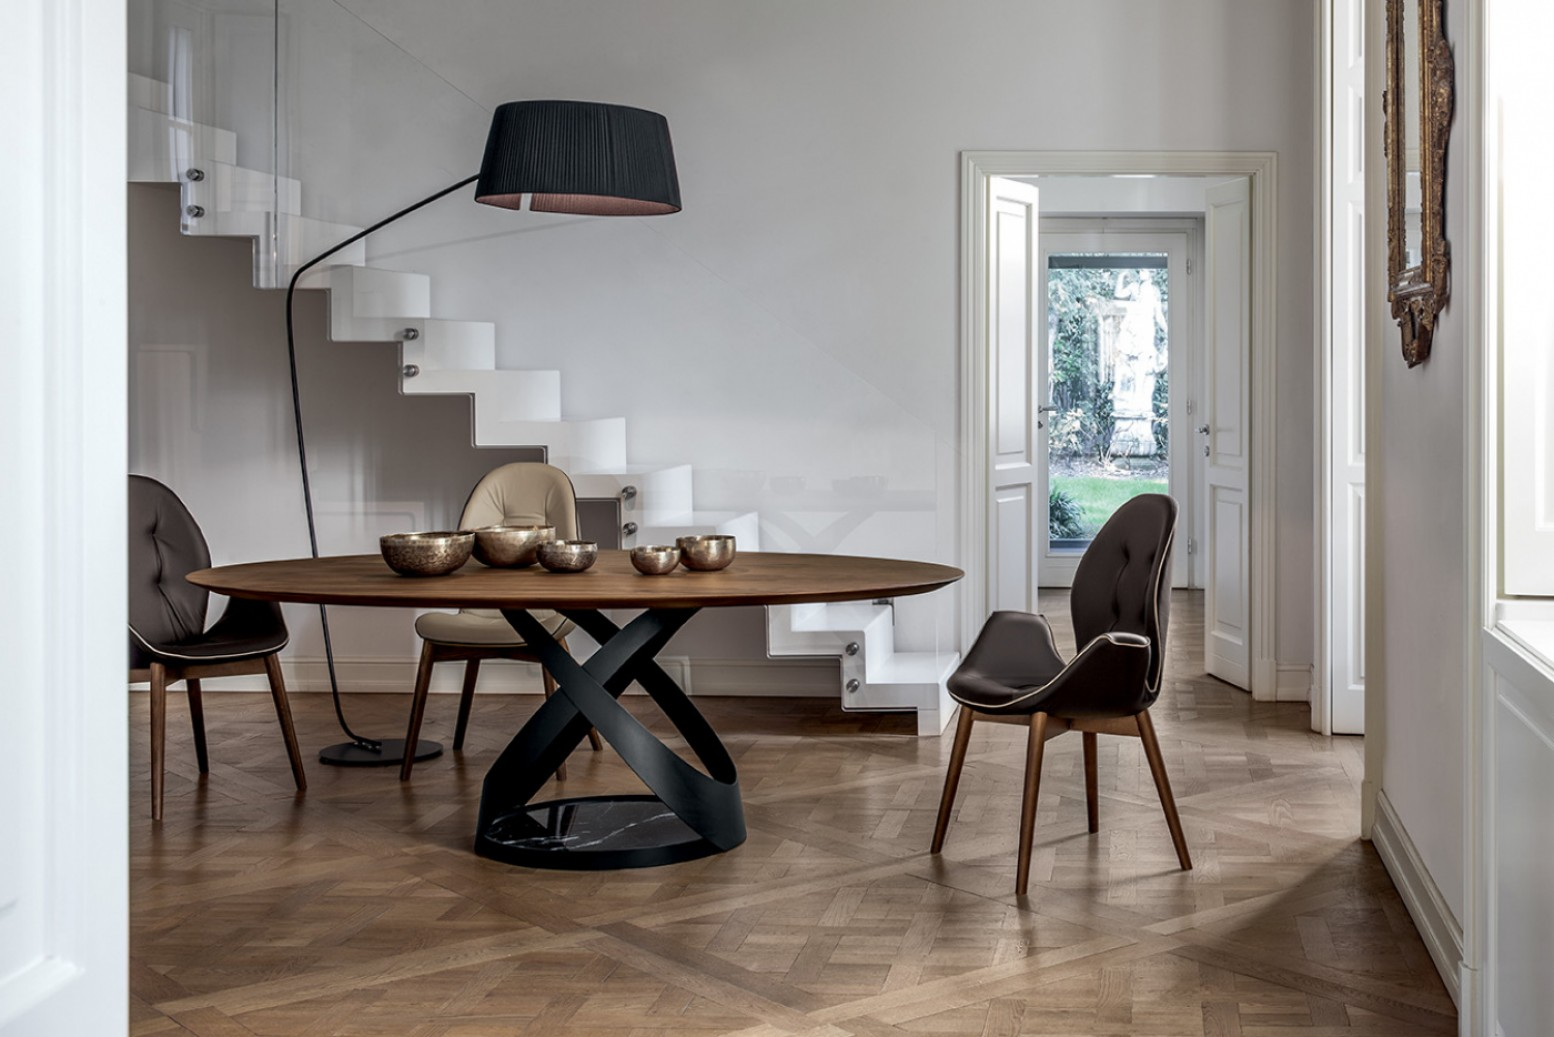 Capri Oval Dining Table Matt Black Metal Base Marquina Black Marble Canaletto Walnut Wood Top Buy Online At Best Price